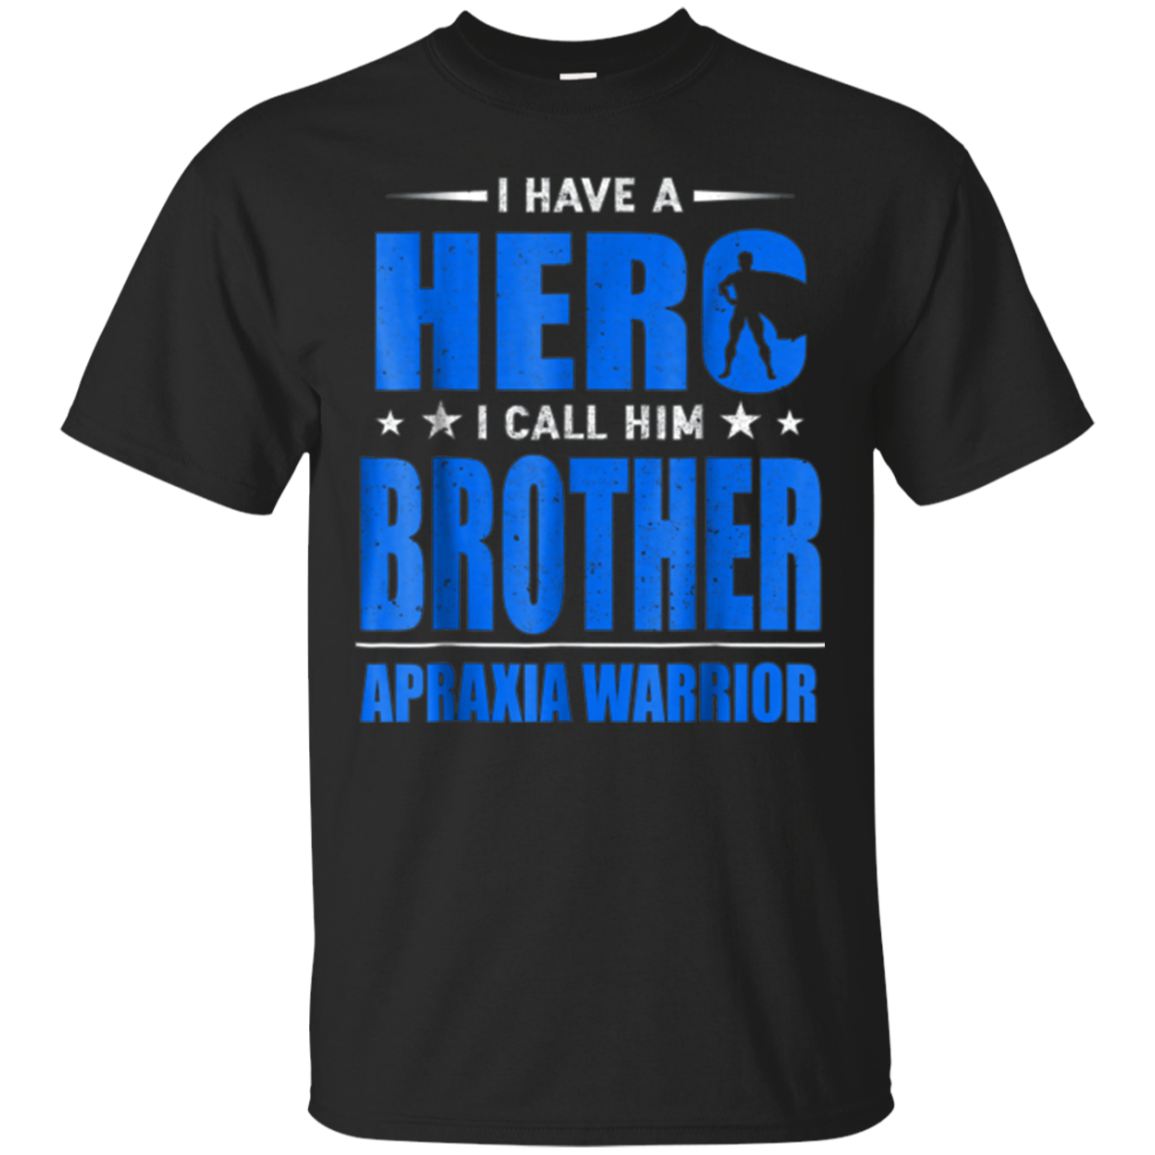 For my brother, Apraxia warrior t shirt